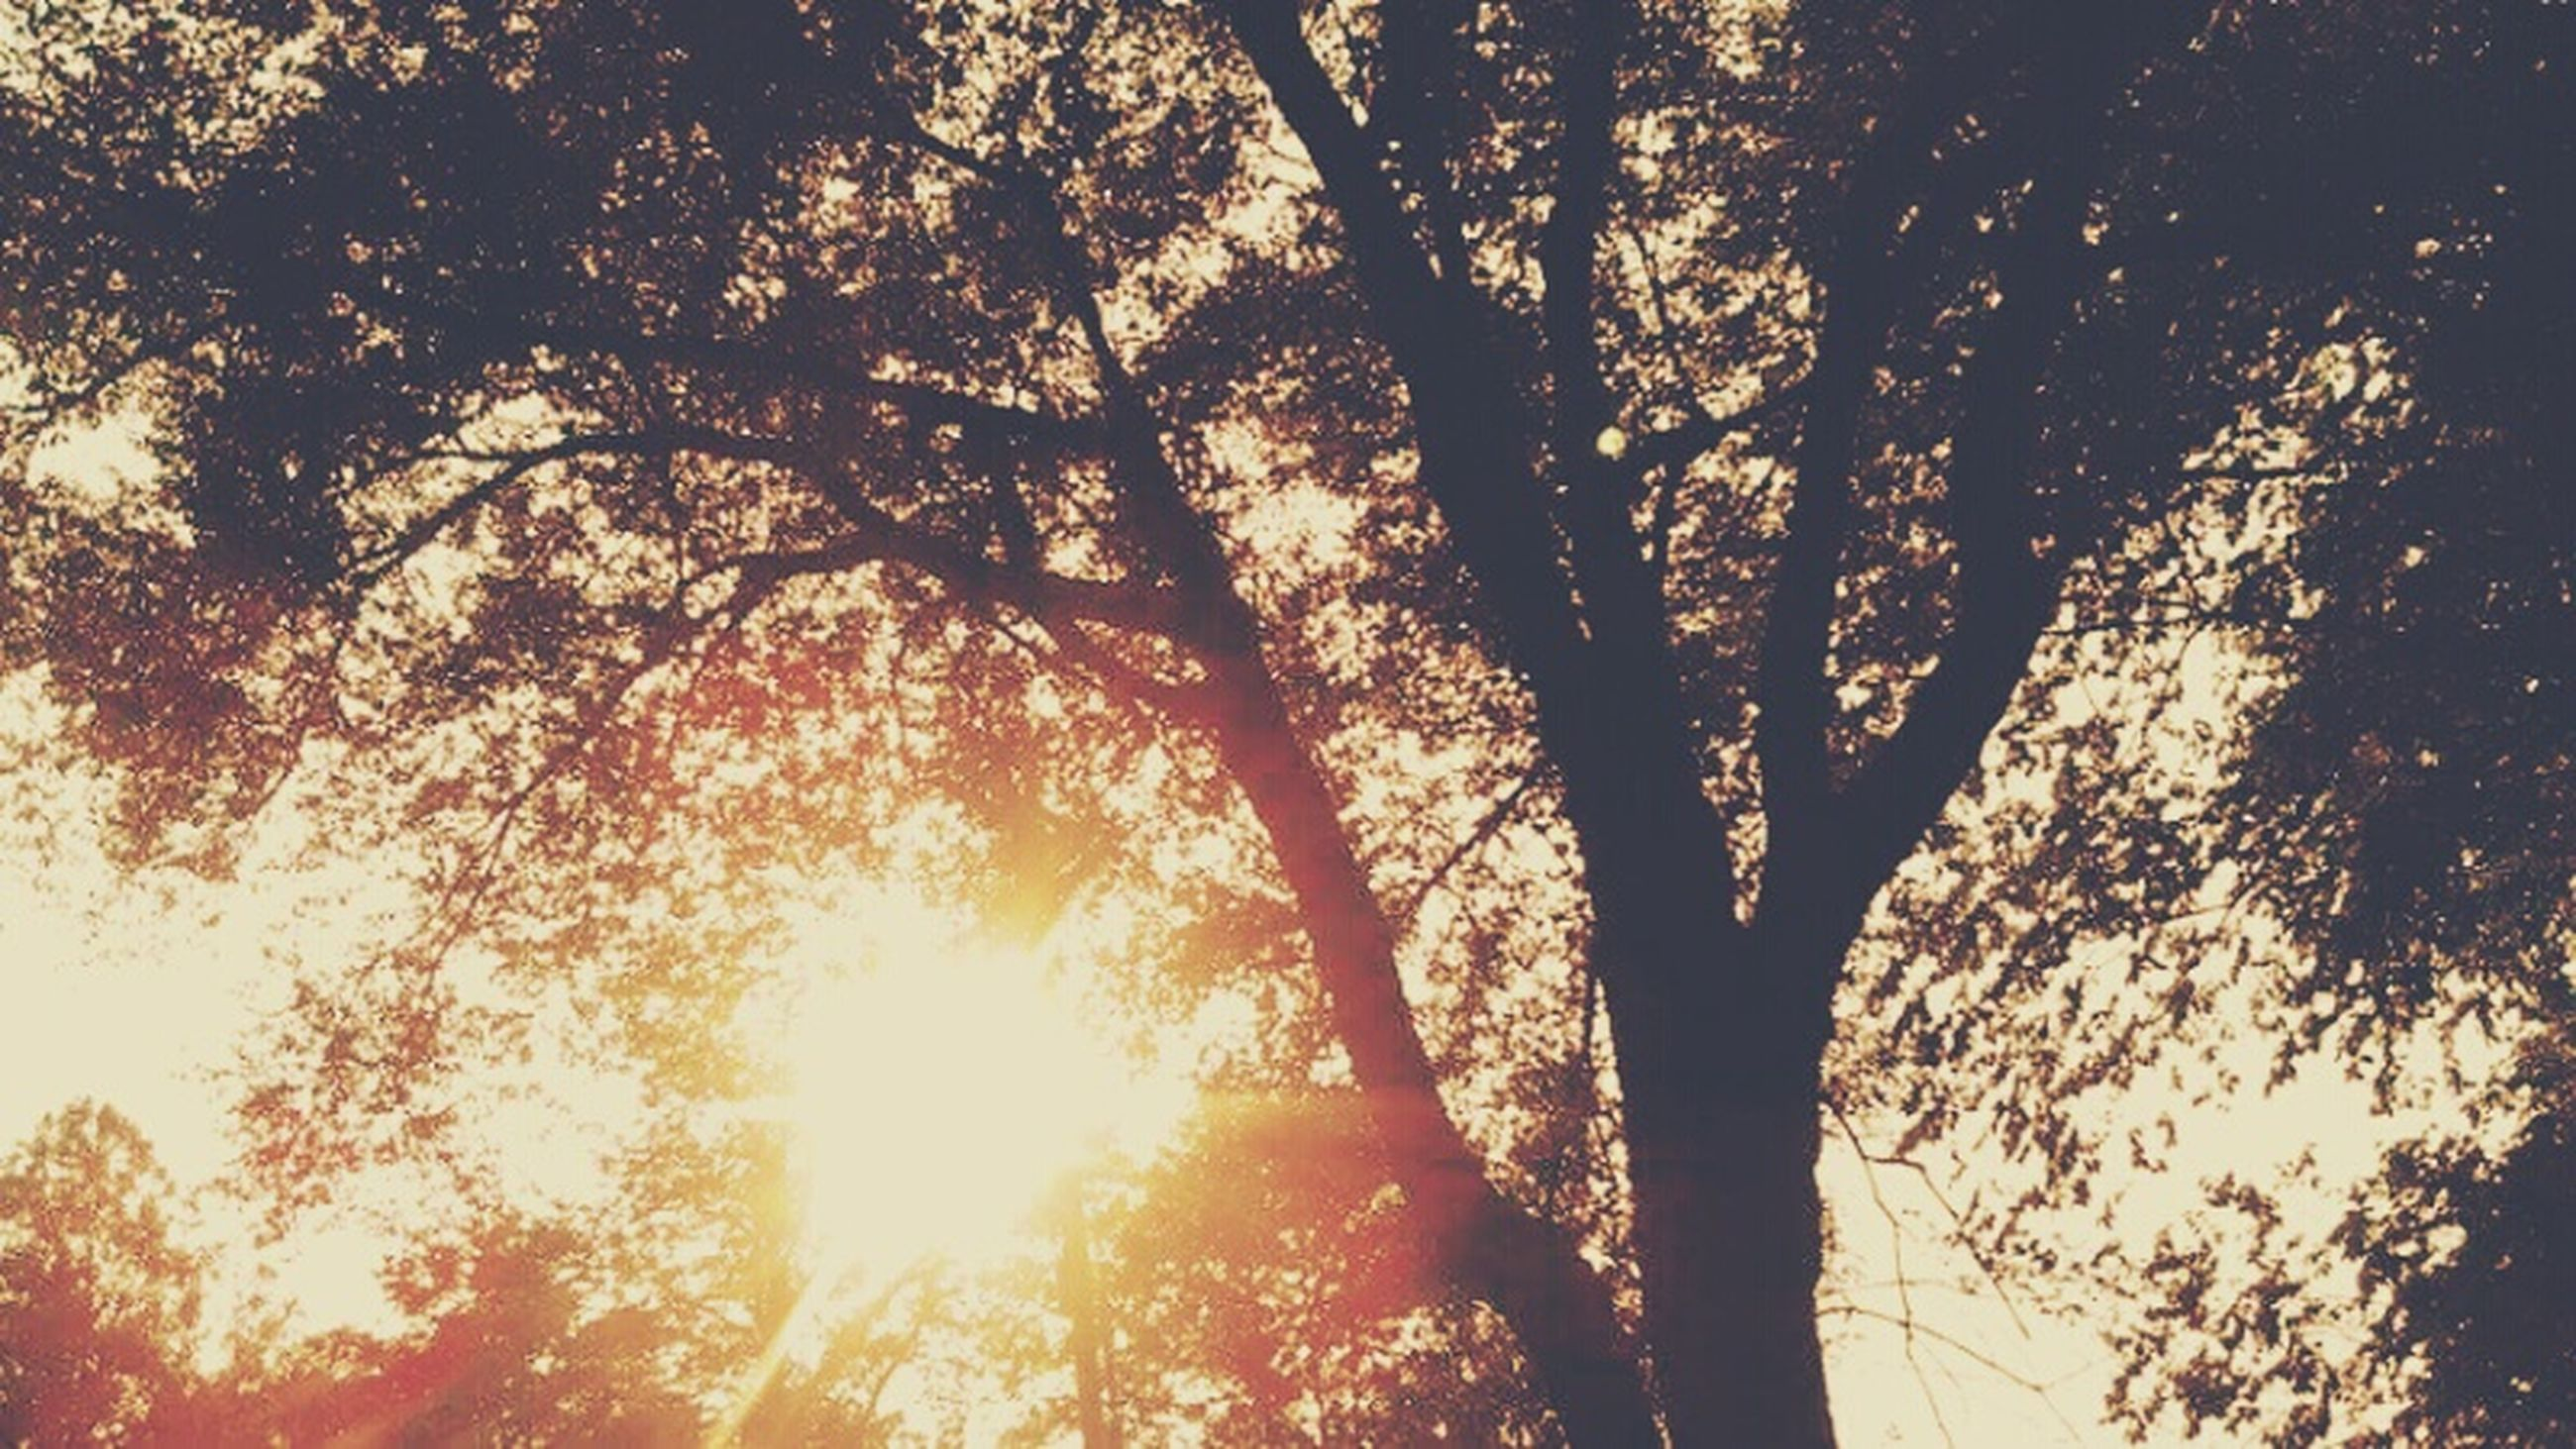 tree, sun, low angle view, branch, sunlight, tranquility, silhouette, sunbeam, nature, beauty in nature, growth, sunset, scenics, lens flare, tranquil scene, sky, back lit, orange color, outdoors, no people